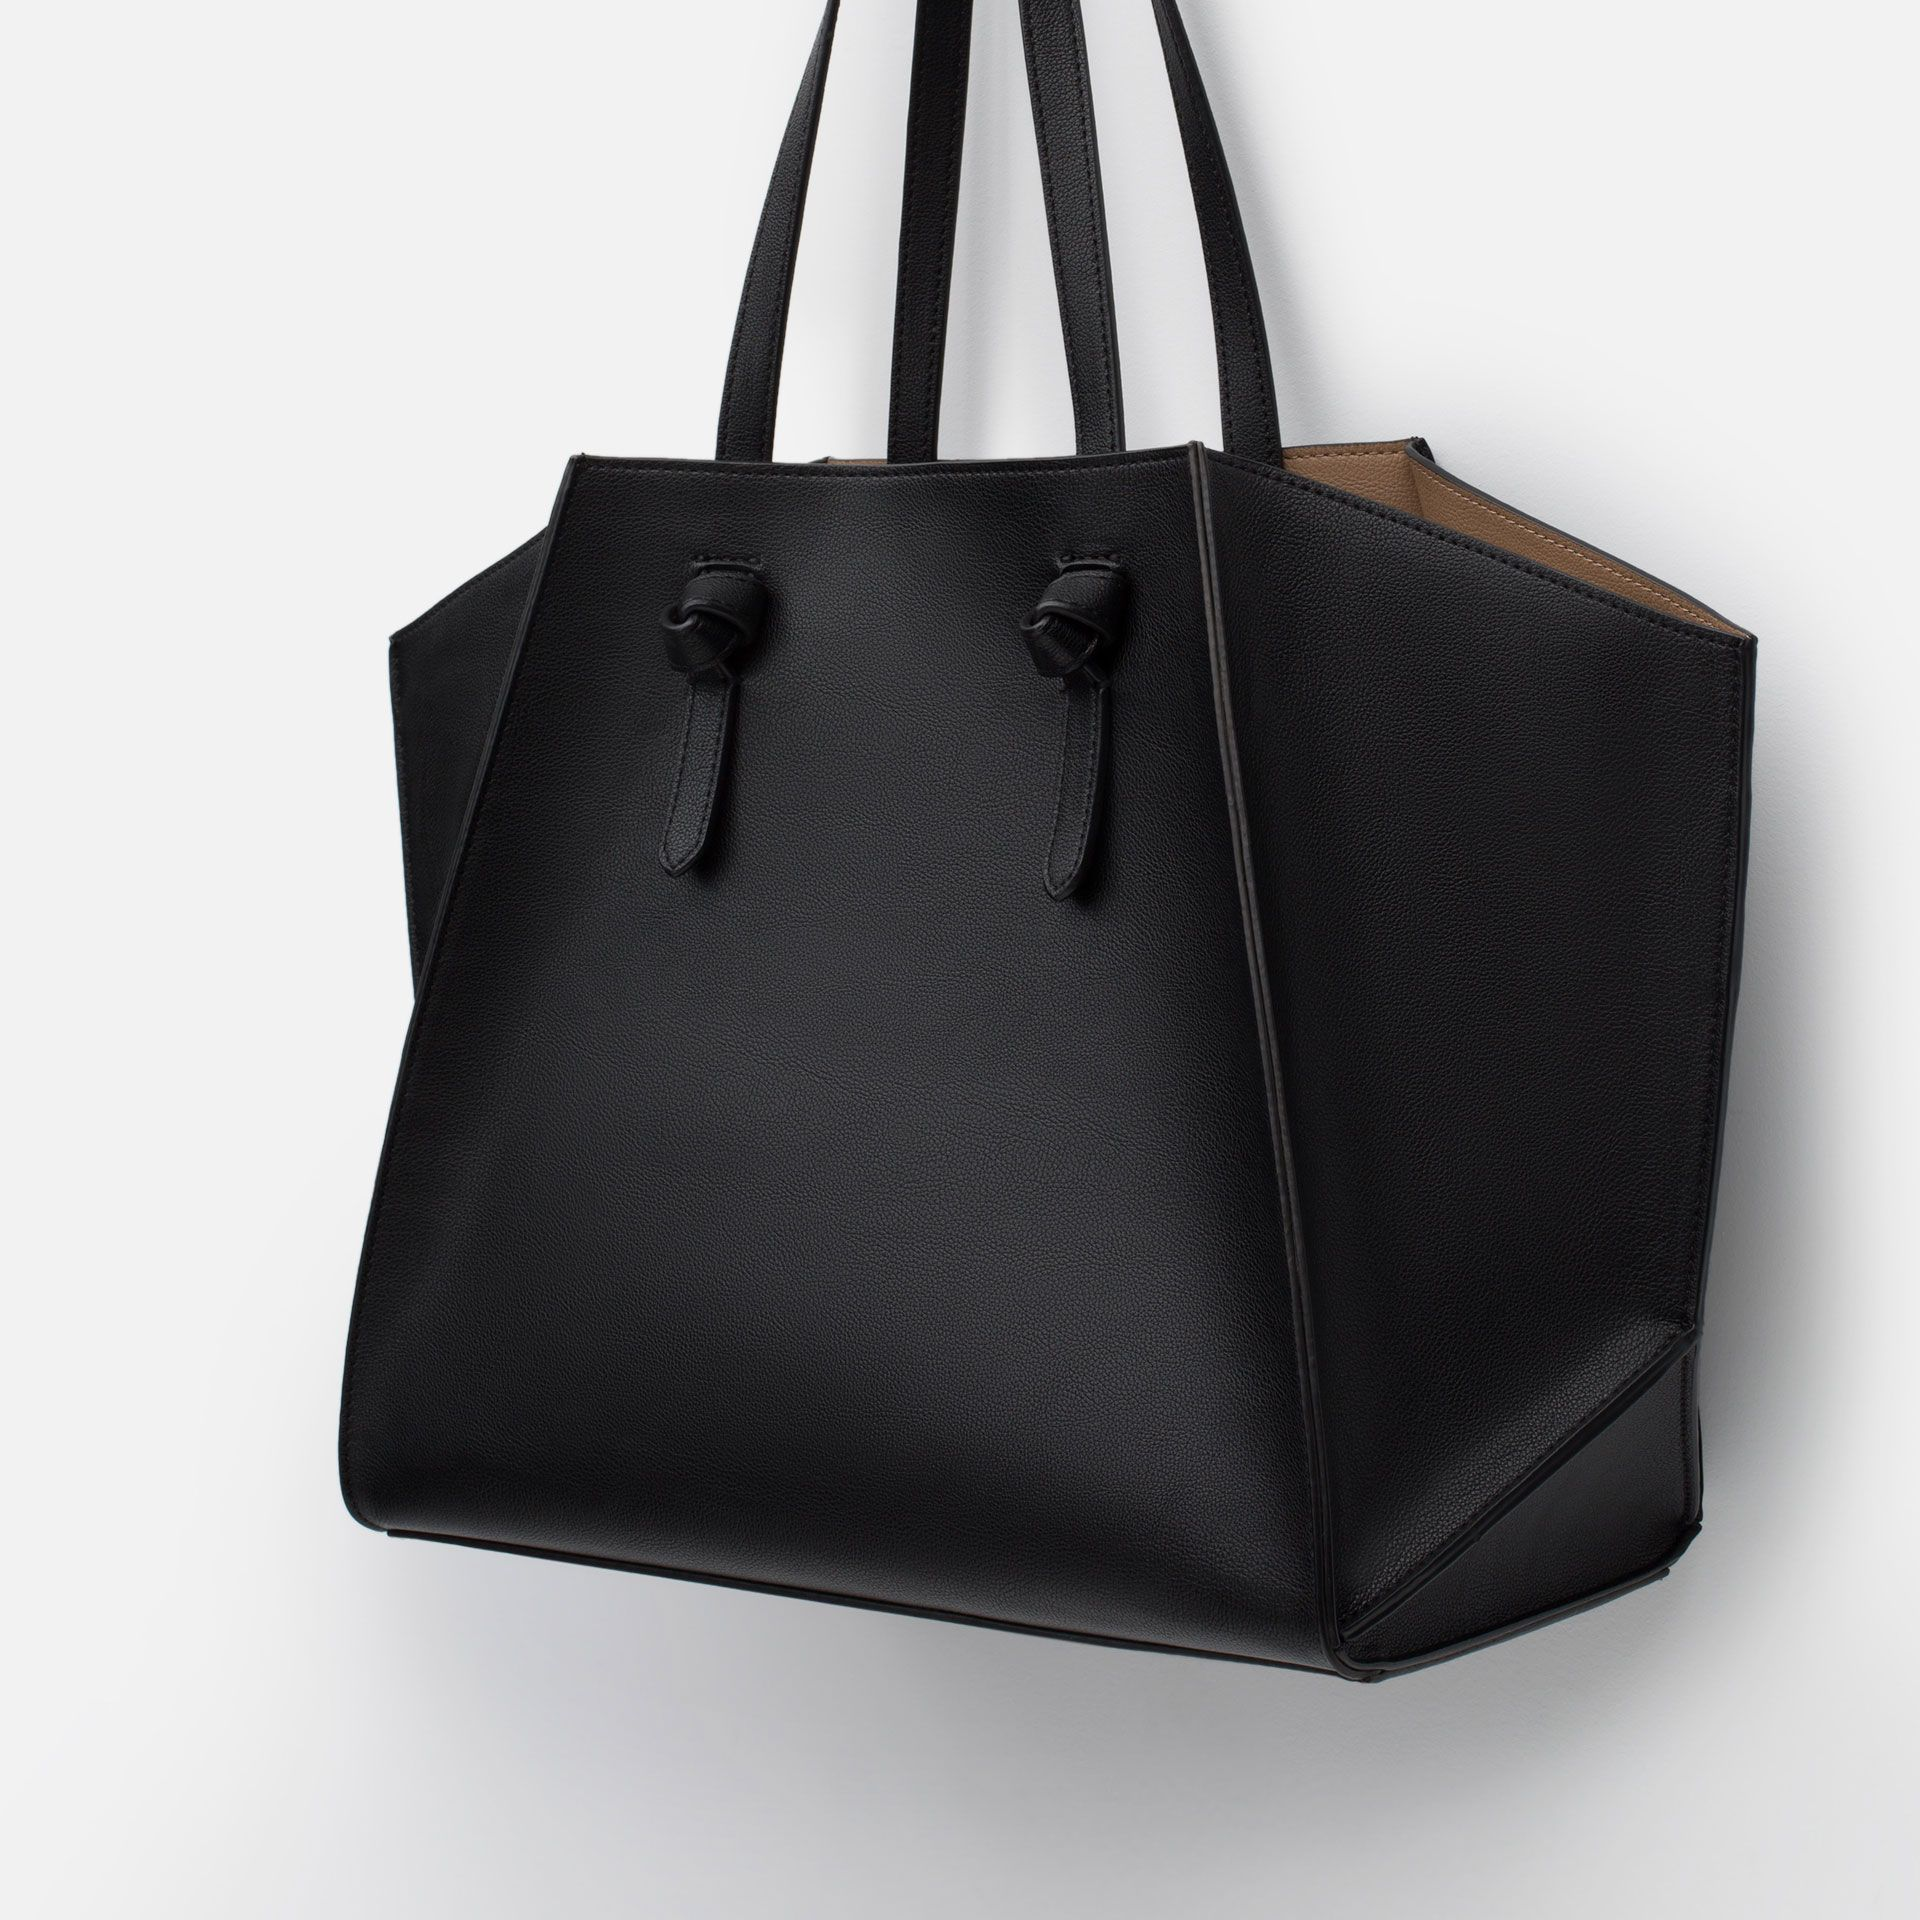 Item Name Tote Bag Leather Zara Bags Shopper Bag